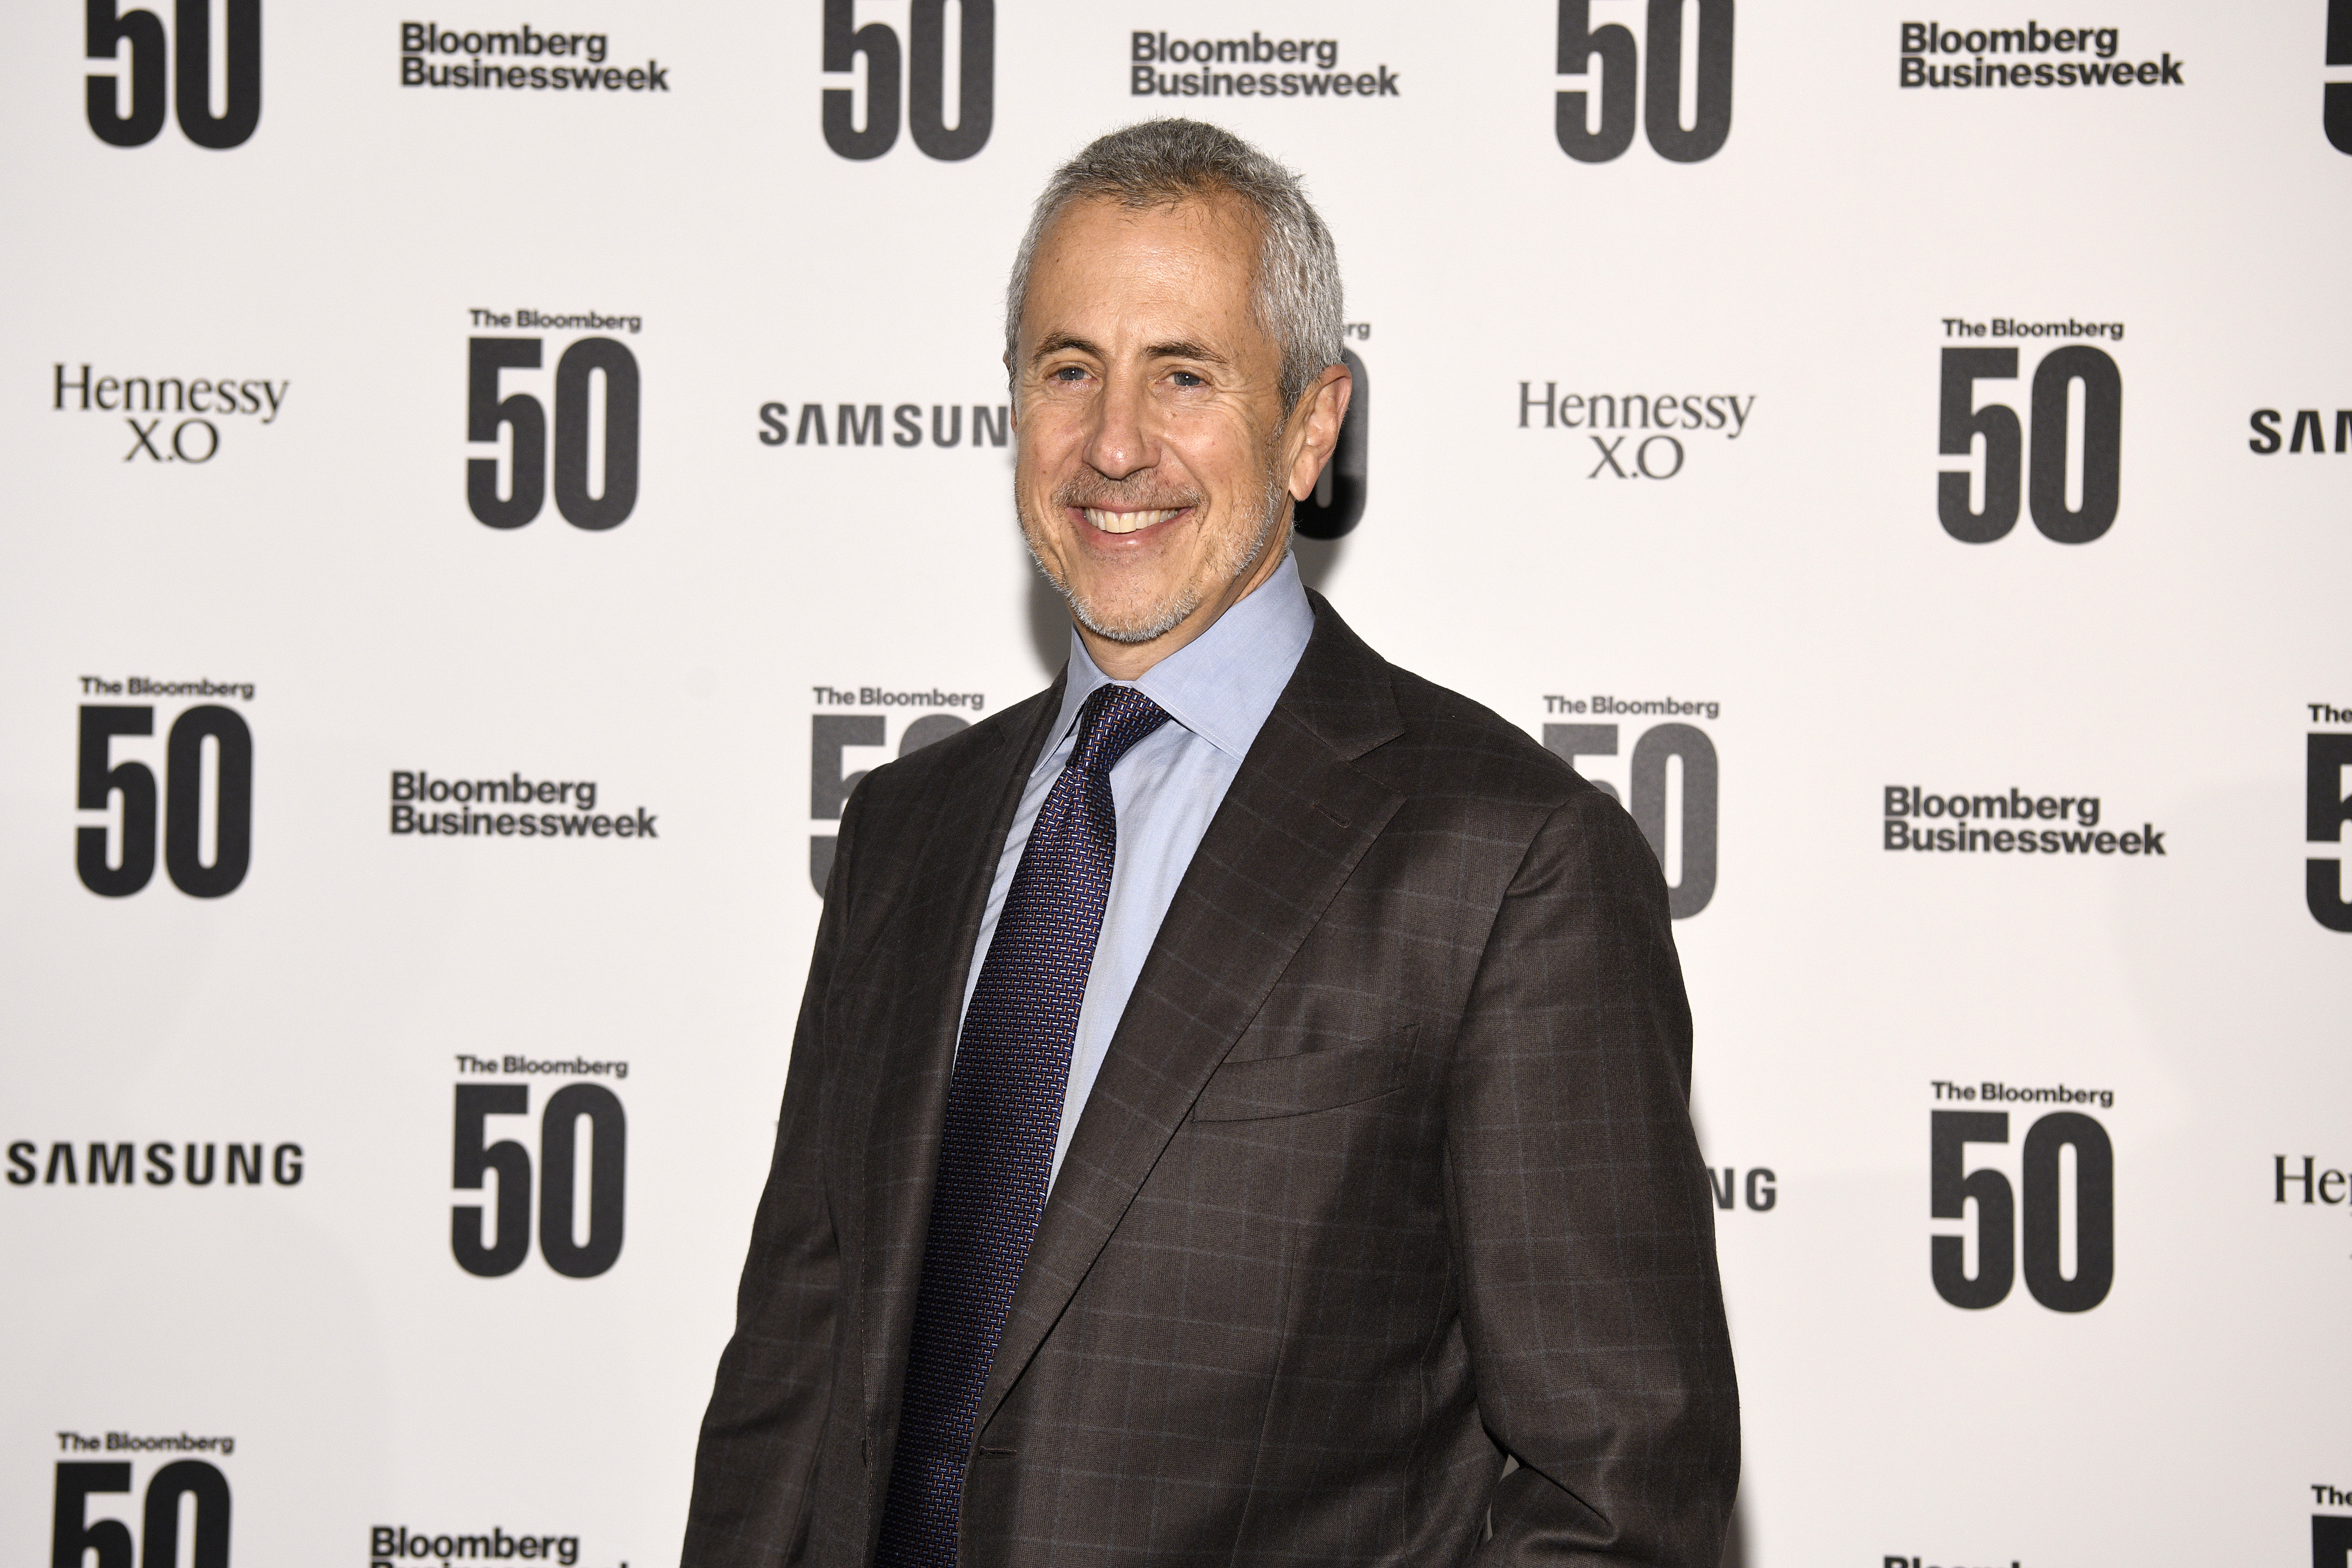 The restaurateur Danny Meyer poses for cameras on a red carpet